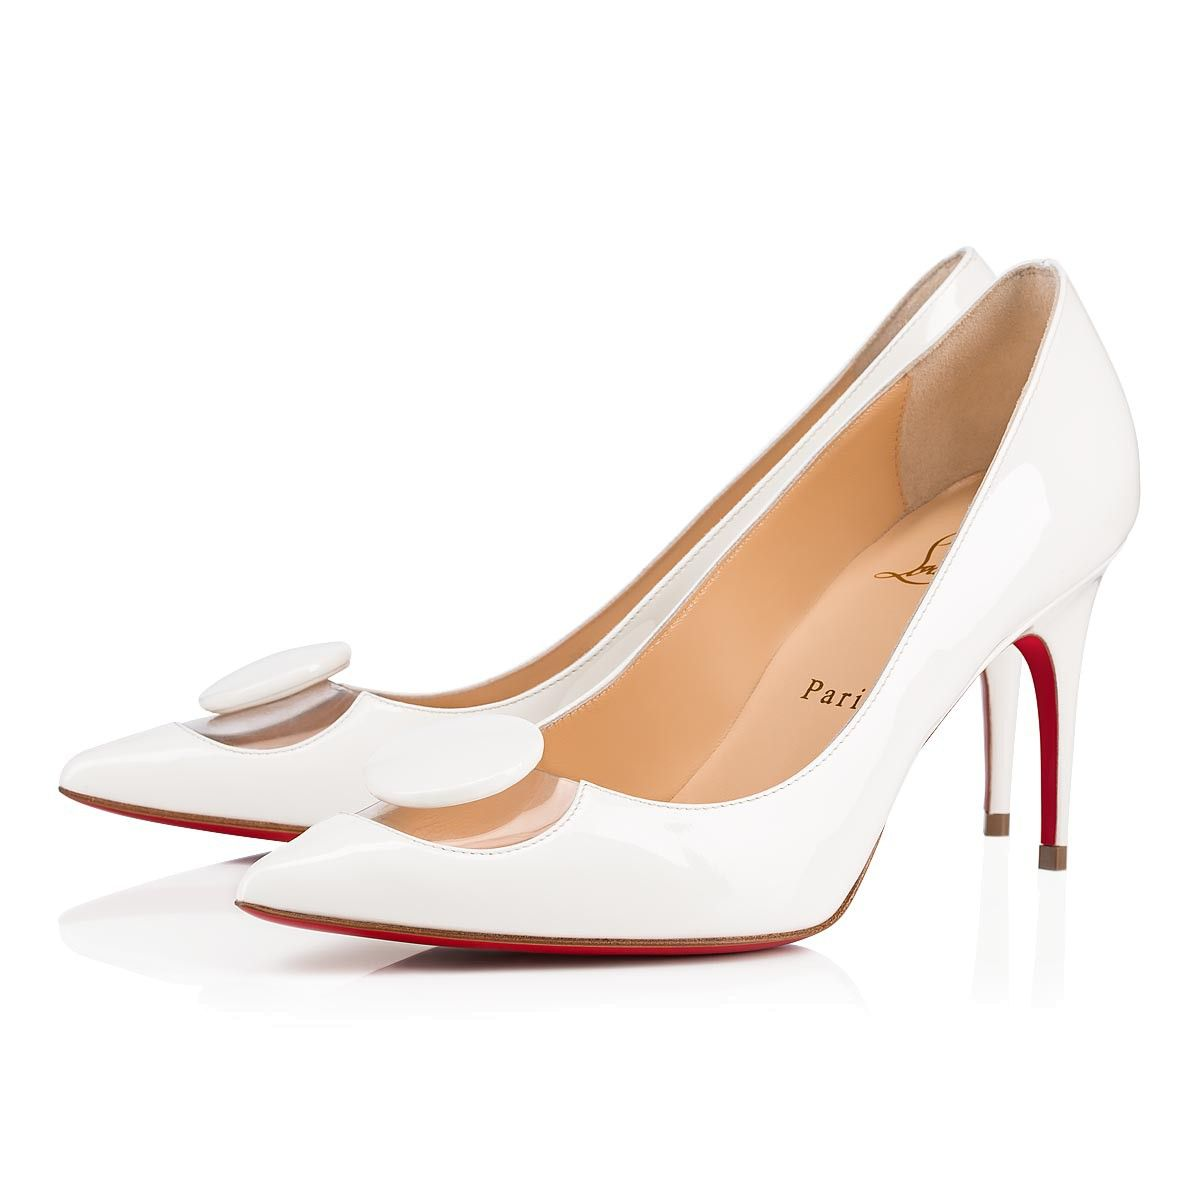 7bcca38ab98 CHRISTIAN LOUBOUTIN Moon. #christianlouboutin #shoes | Christian ...